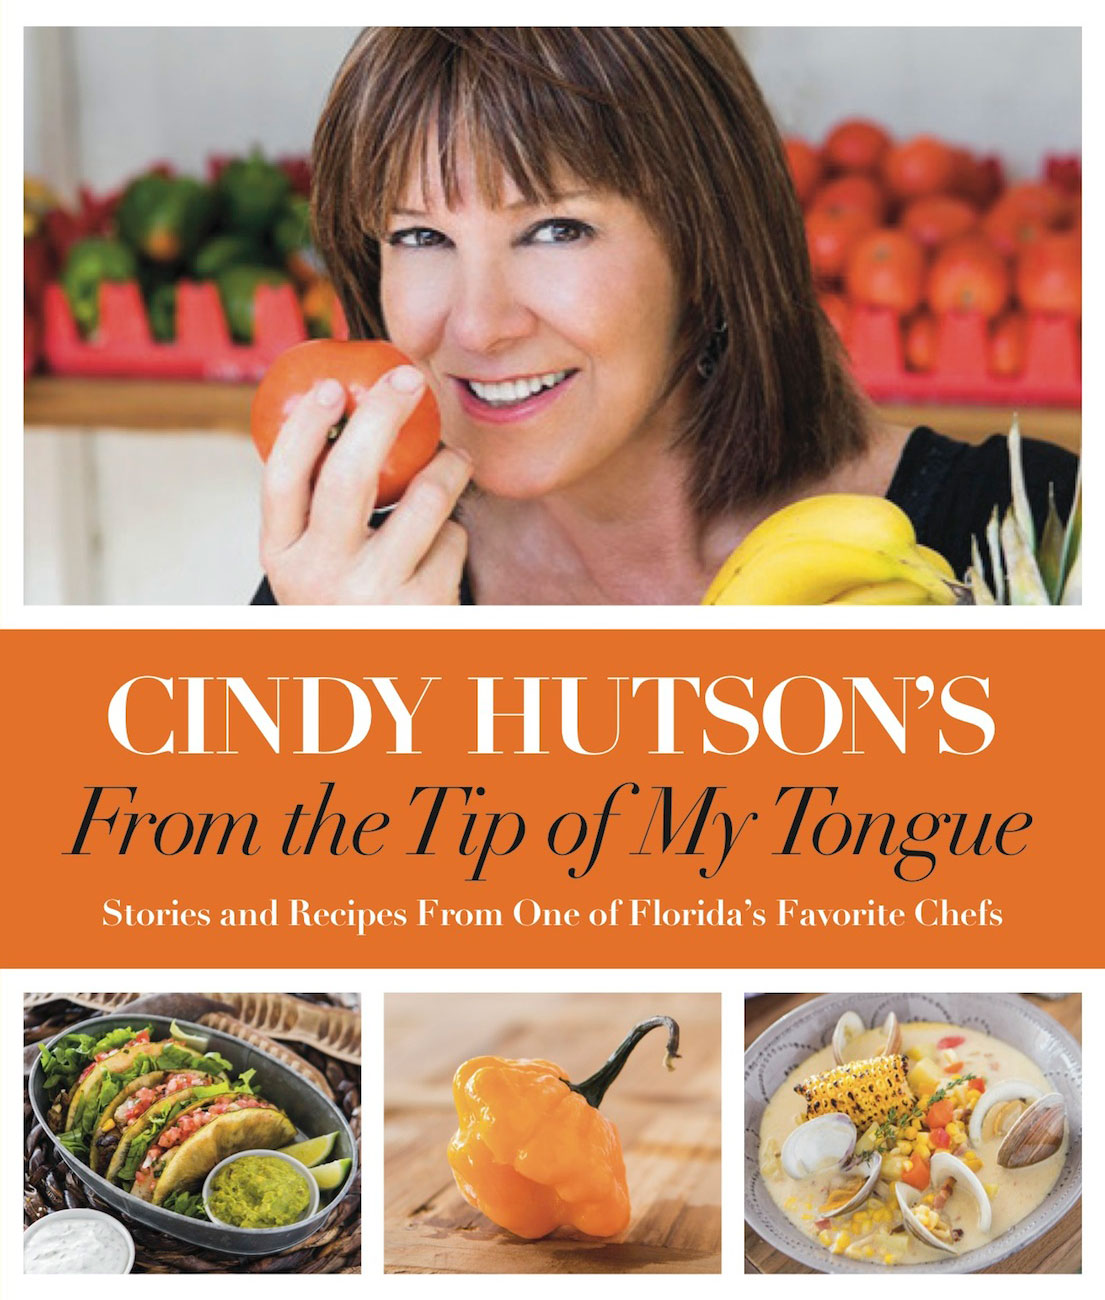 cindy-hutson-cookbook1